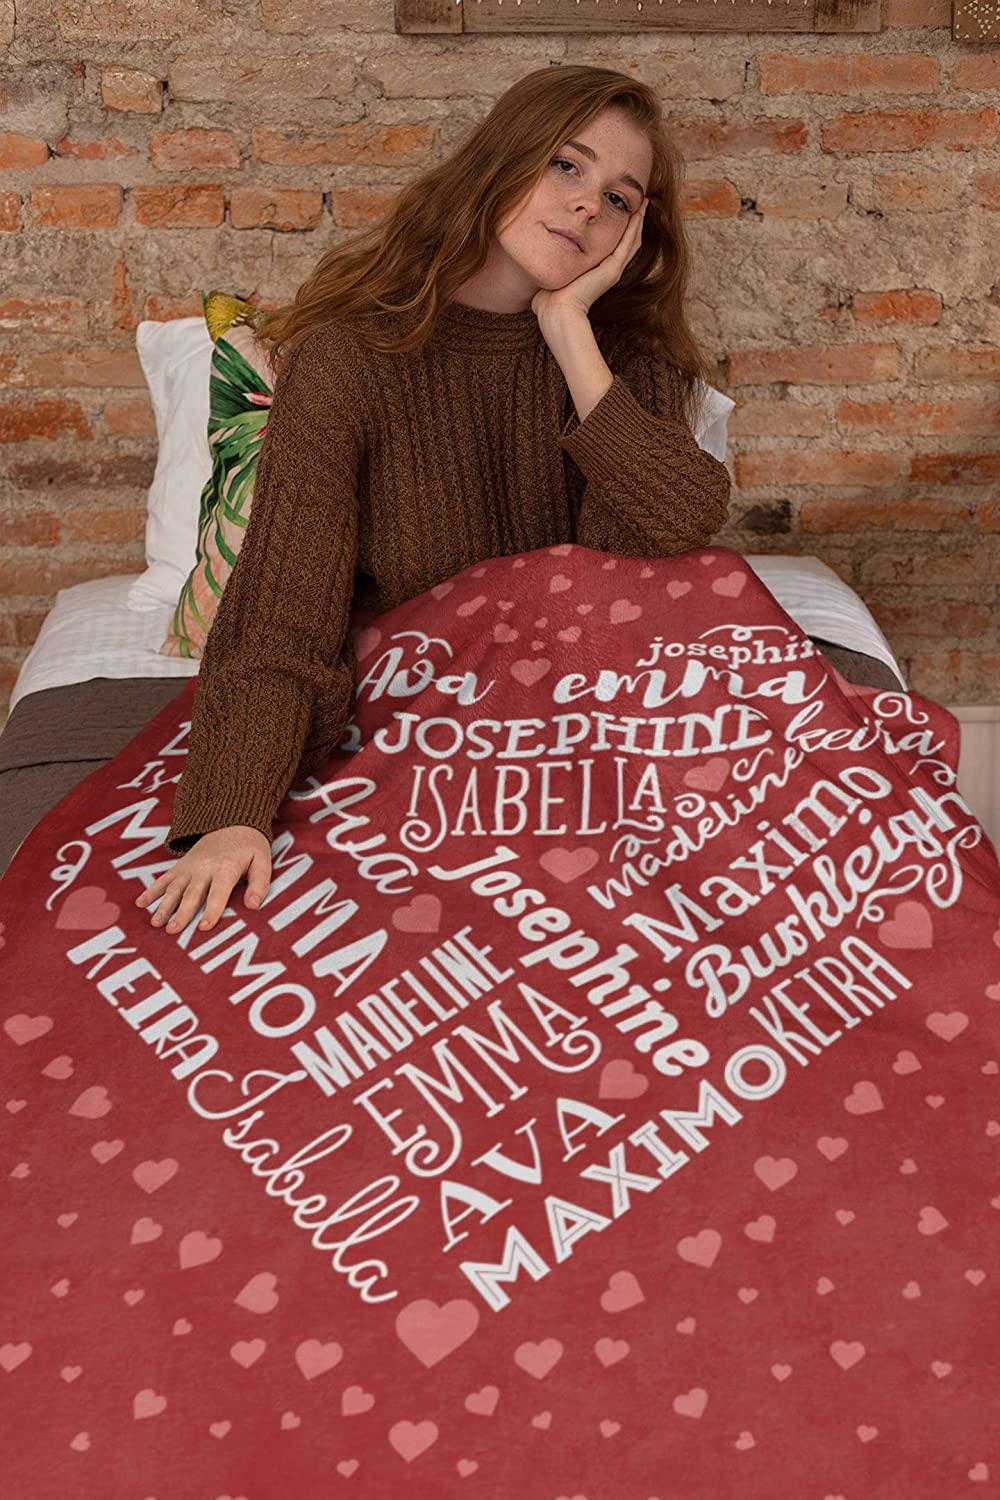 Personalized Name 訳あり品送料無料 Blanket for Your Custom Throw 授与 Family